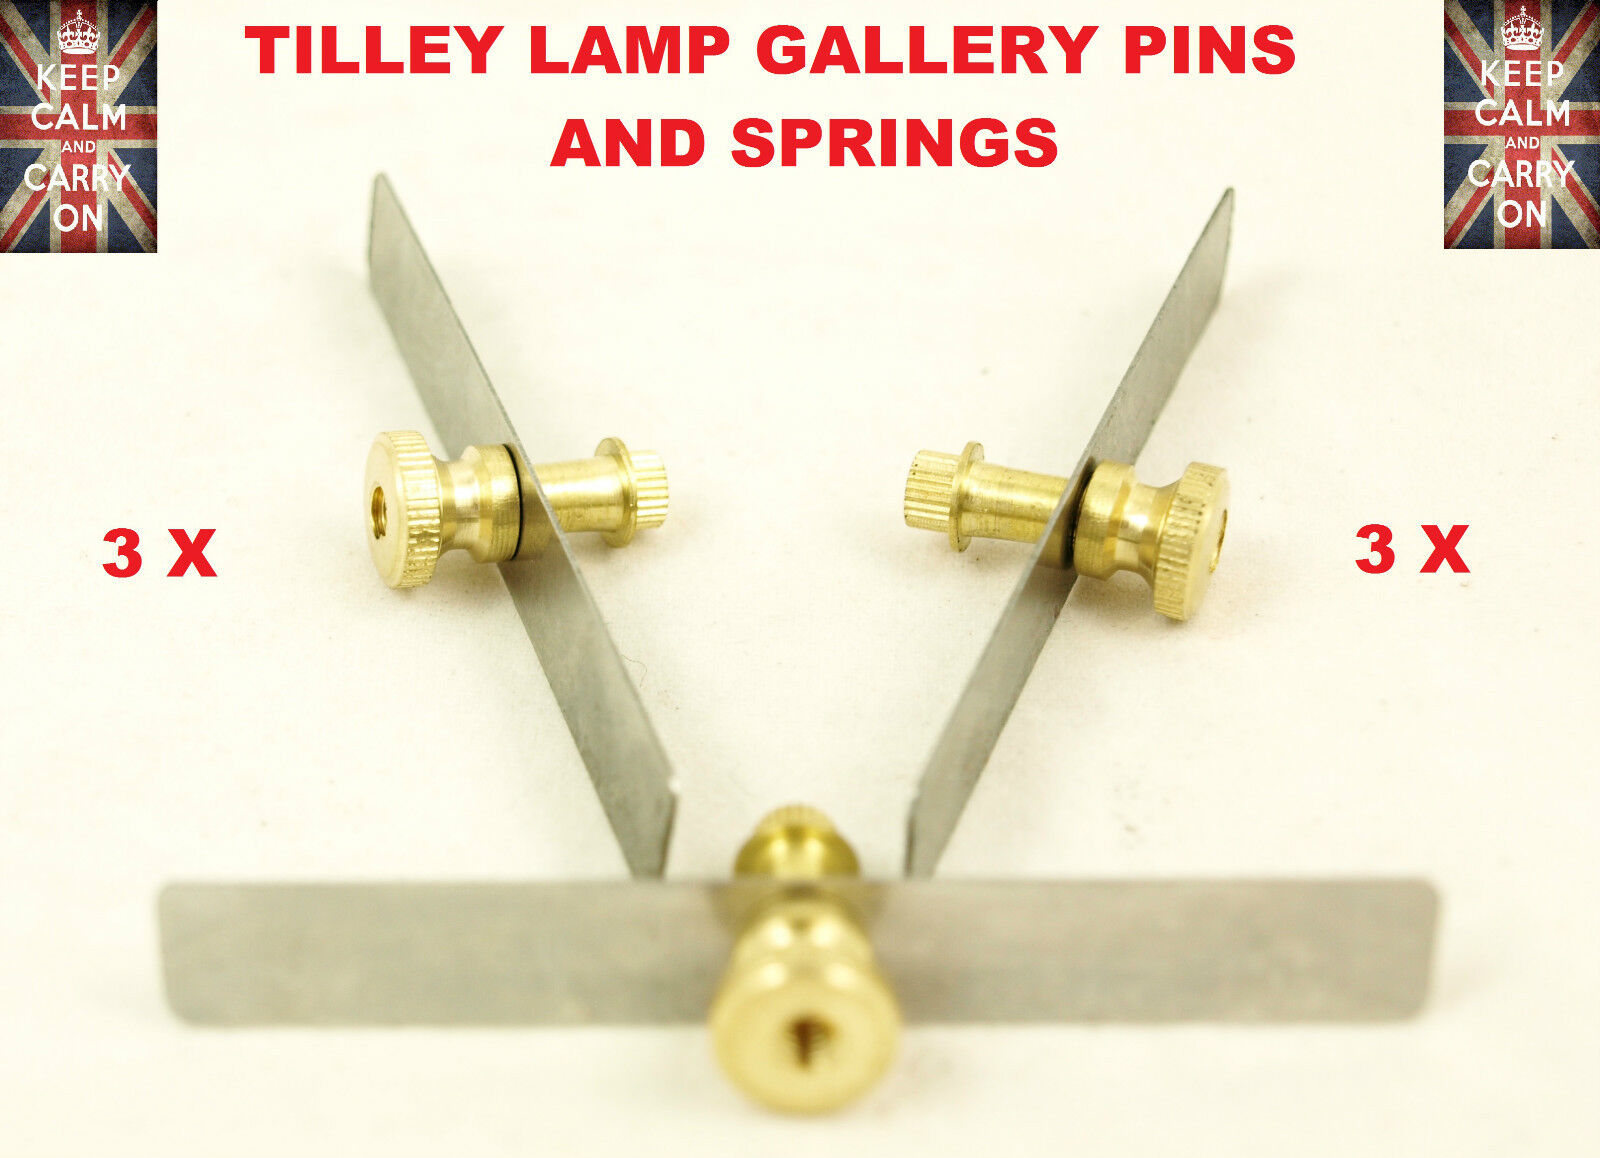 springs and pins tilley lantern Gallery for Tilley  Lamp Table